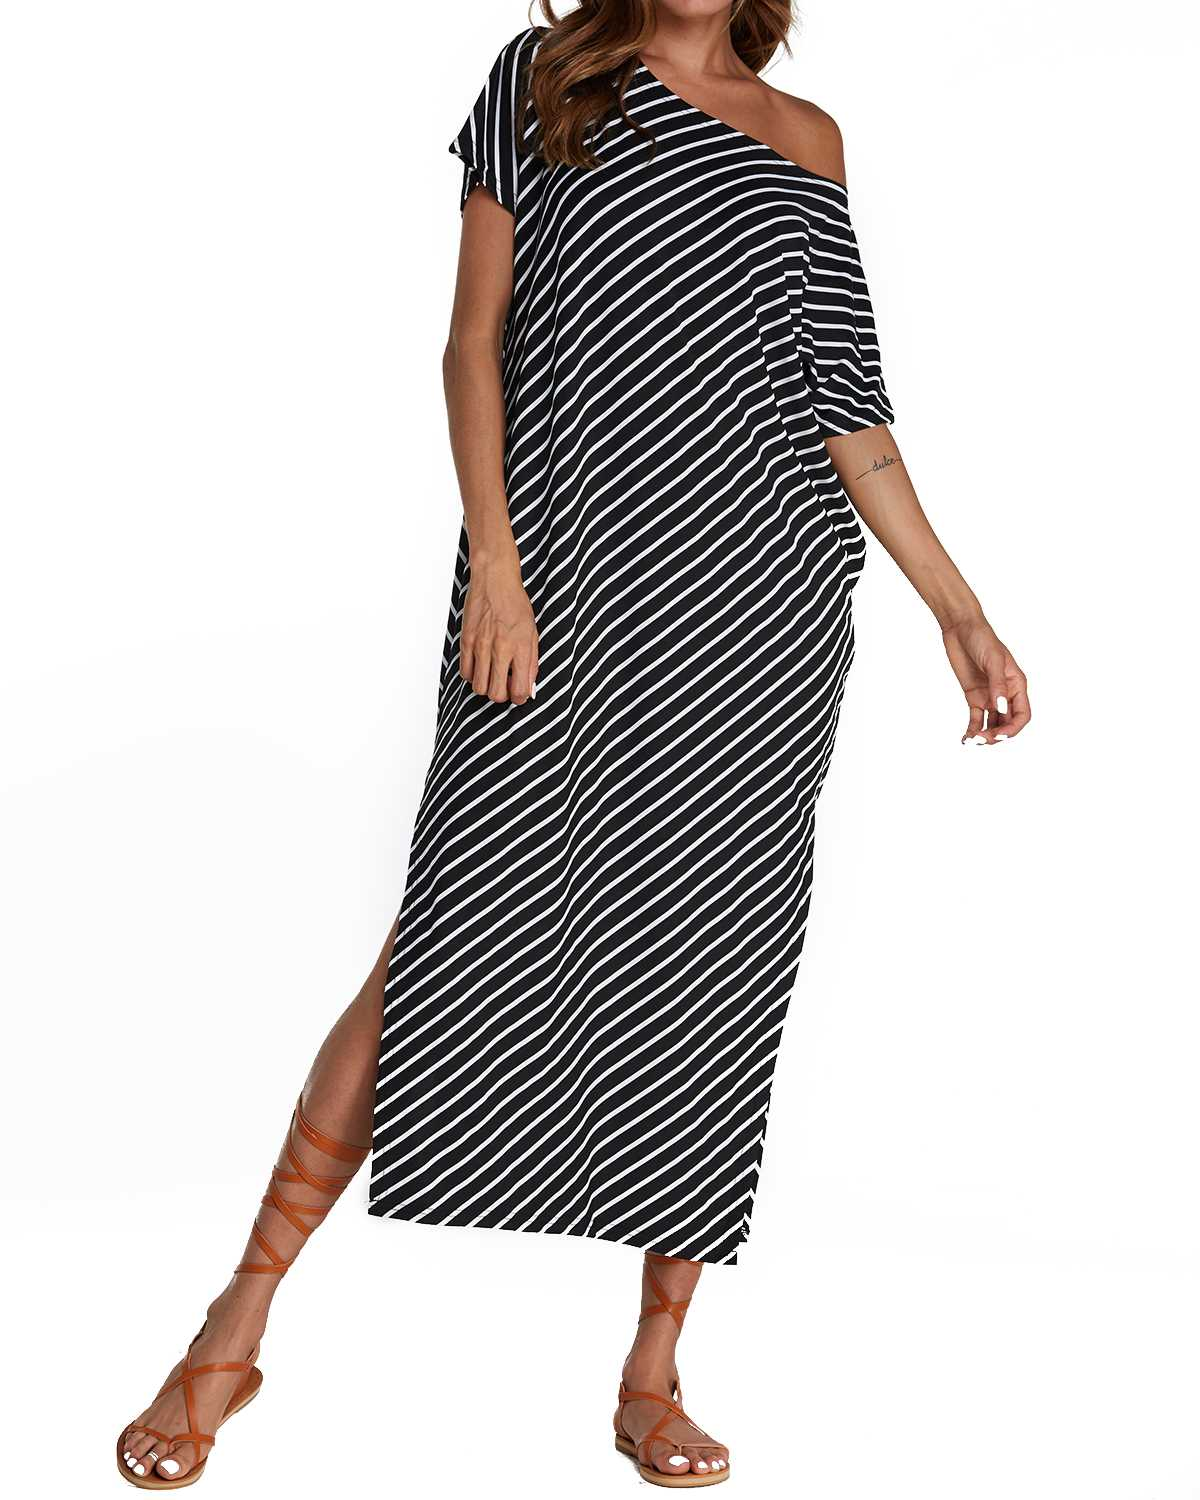 Women ZANZEA Summer Striped Split Shirt Dress Casual Half Sleeve Loose Beach Midi Dresses Ladies Round Neck Robe Vestidos Mujer